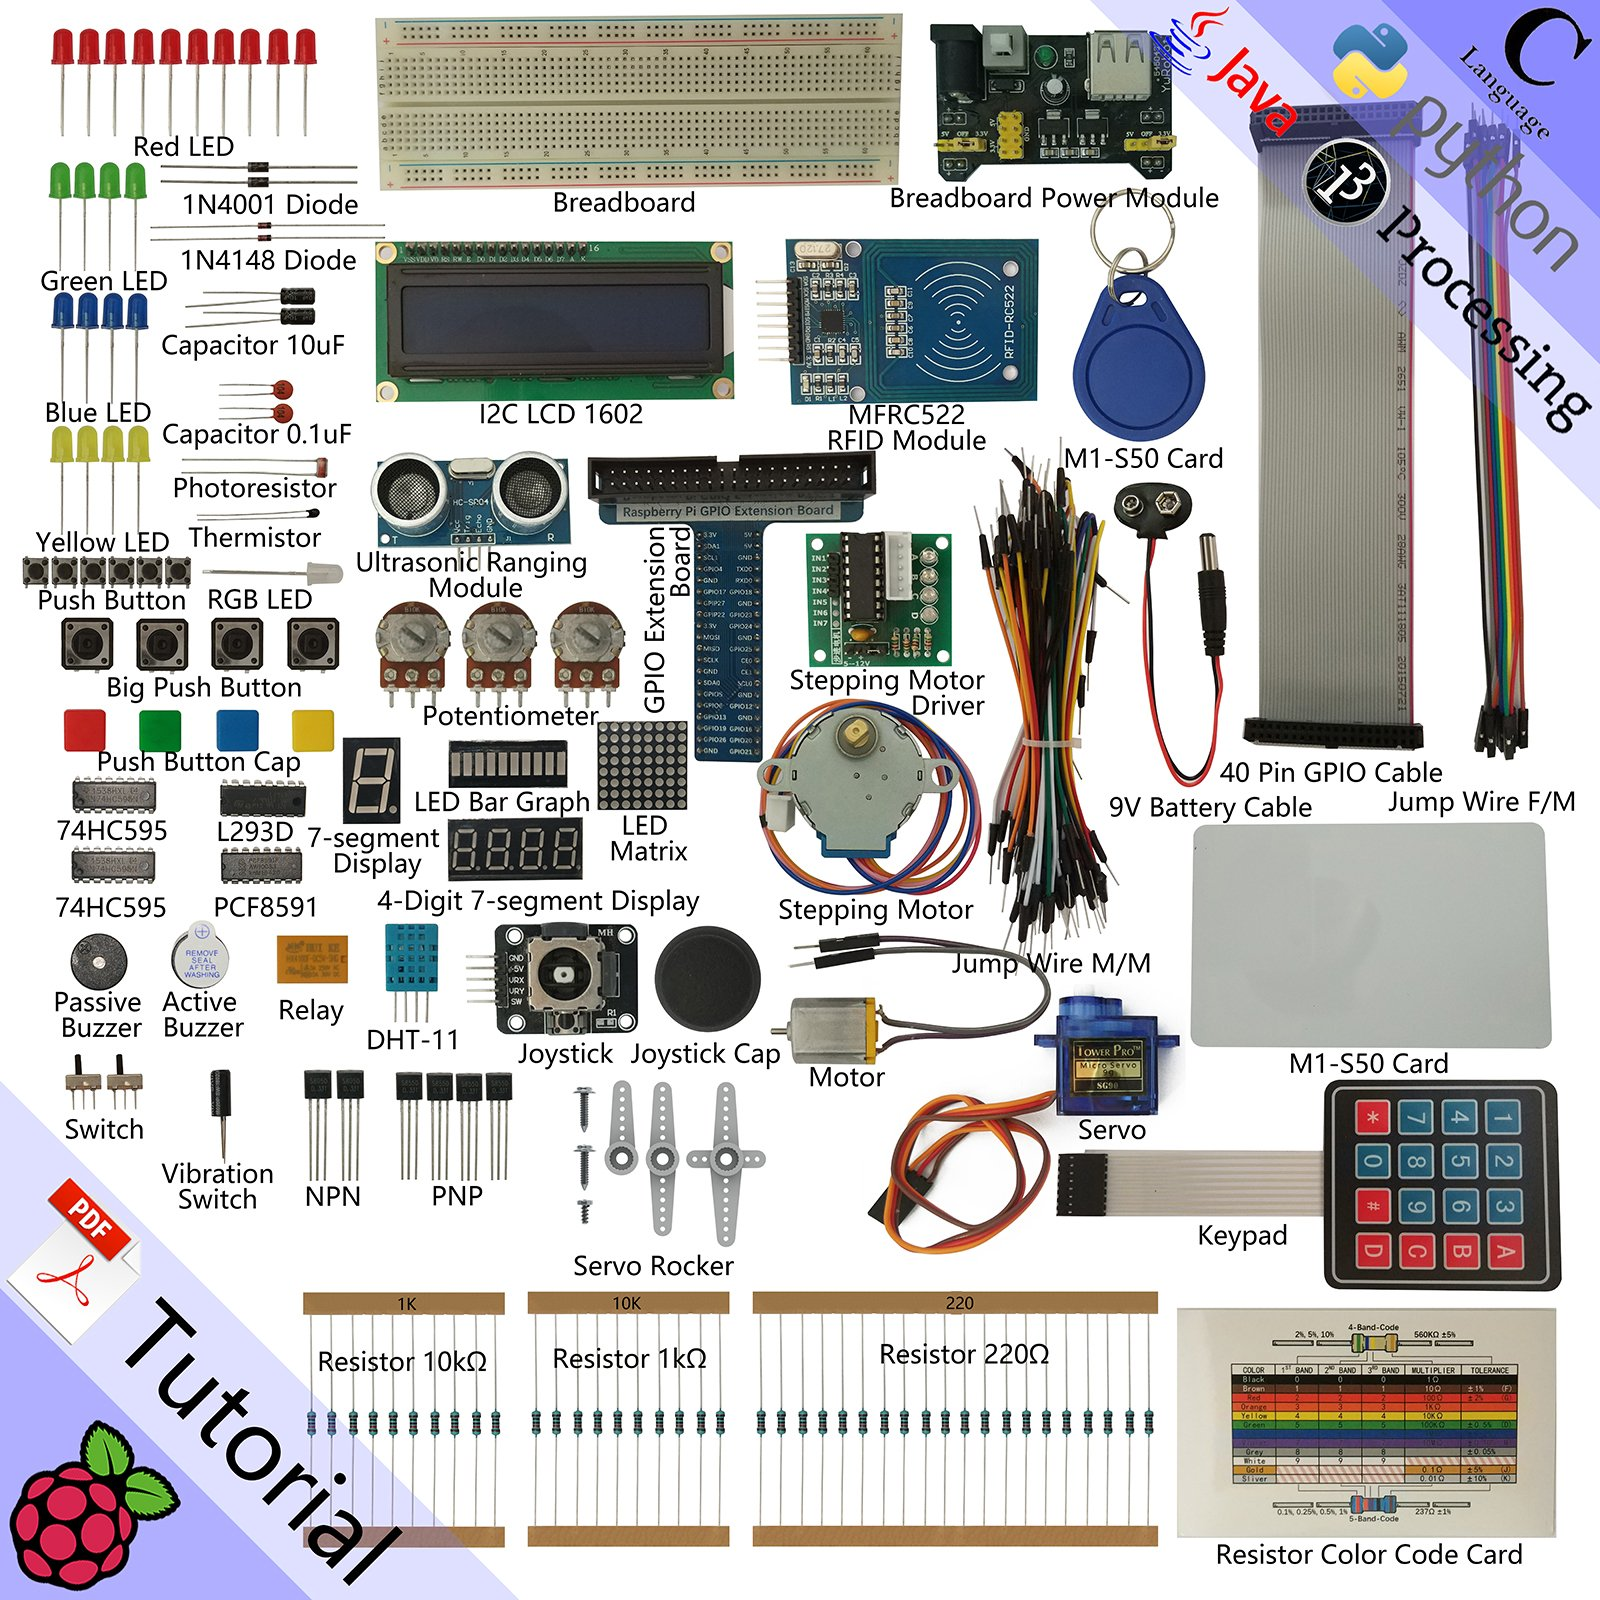 Freenove RFID Starter Kit for Raspberry Pi   Beginner Learning   Model 3B+ 3B 2B 1B+ 1A+ Zero W   Python, C, Java, Processing   53 Projects, 391 Pages Detailed Tutorials, 200+ Components